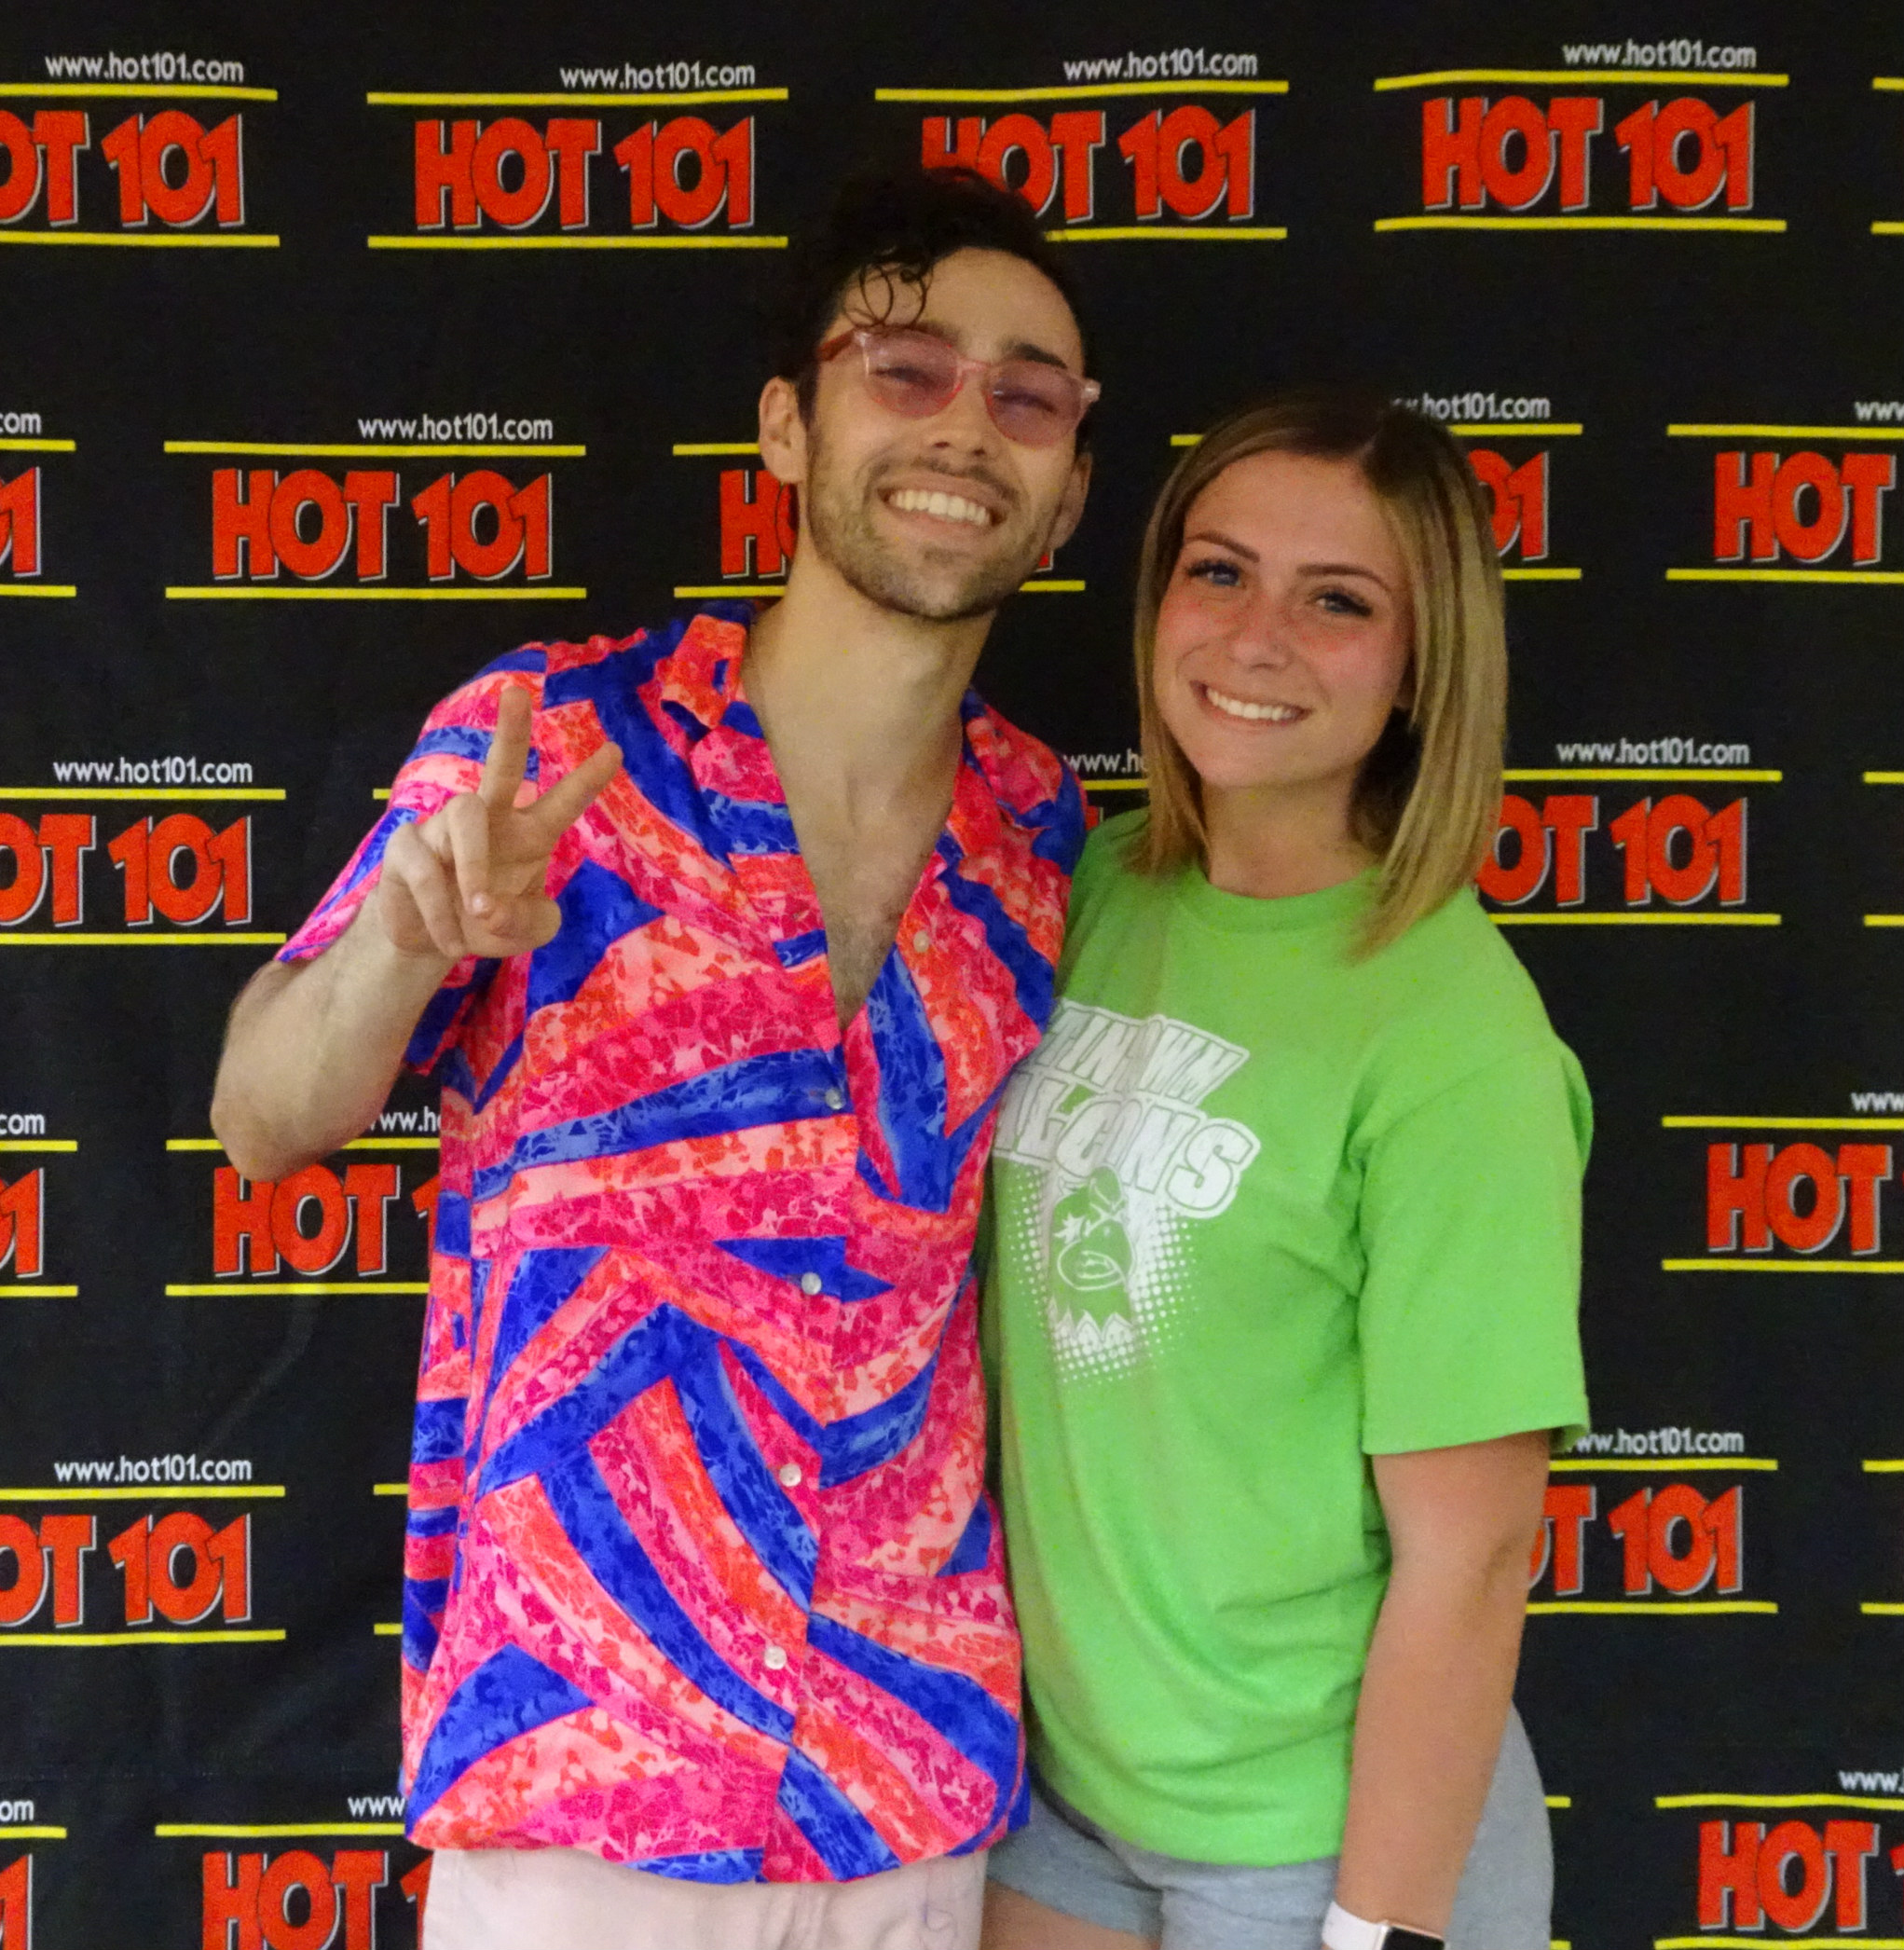 HOT 101 Artist Encounter with Max.